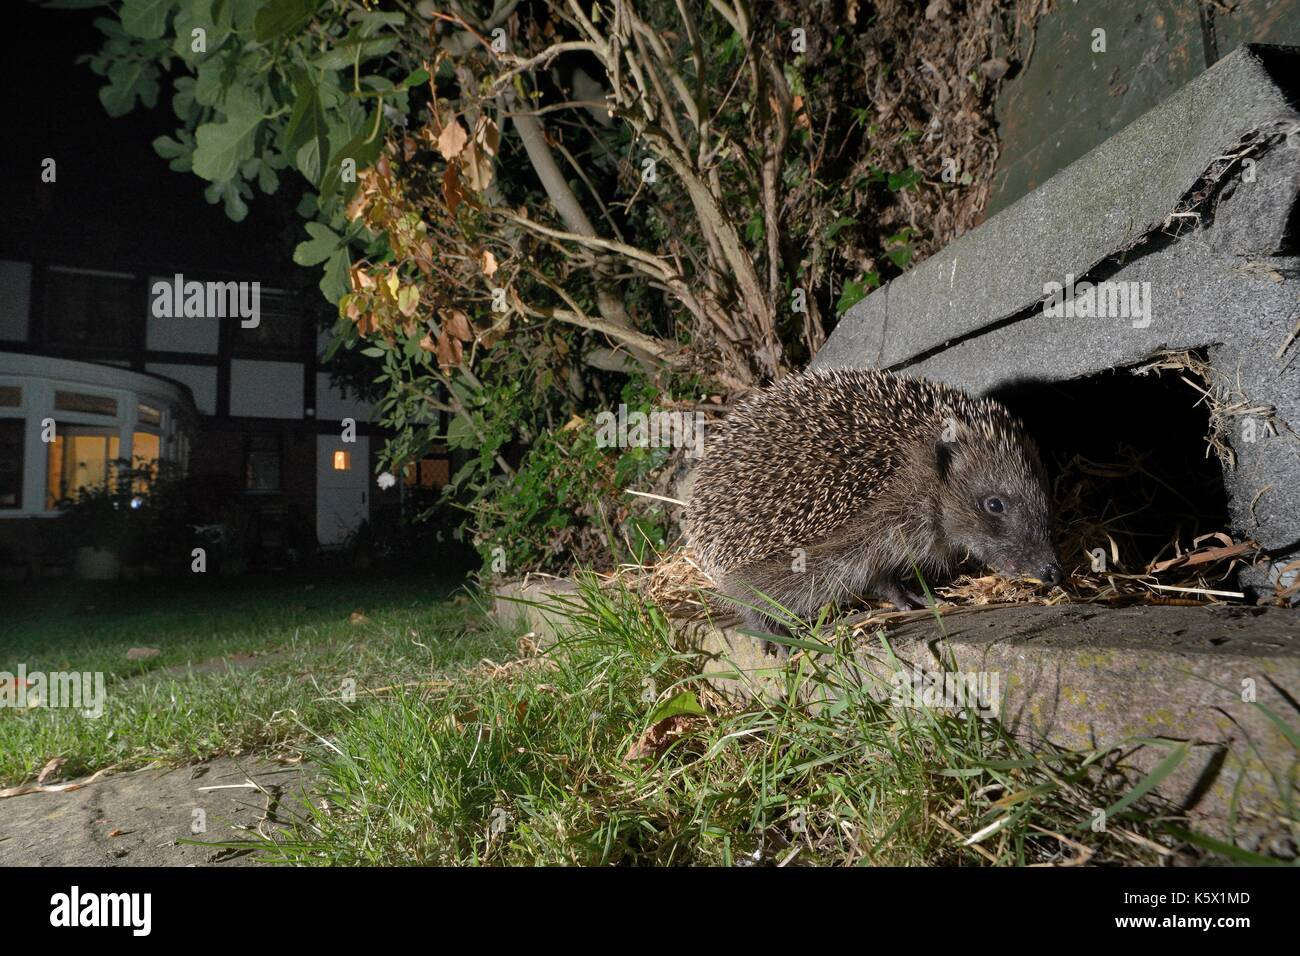 Hedgehog (Erinaceus europaeus) about to enter a hedgehog house at night in a suburban garden, Chippenham, Wiltshire, UK.  Taken with a camera trap. - Stock Image